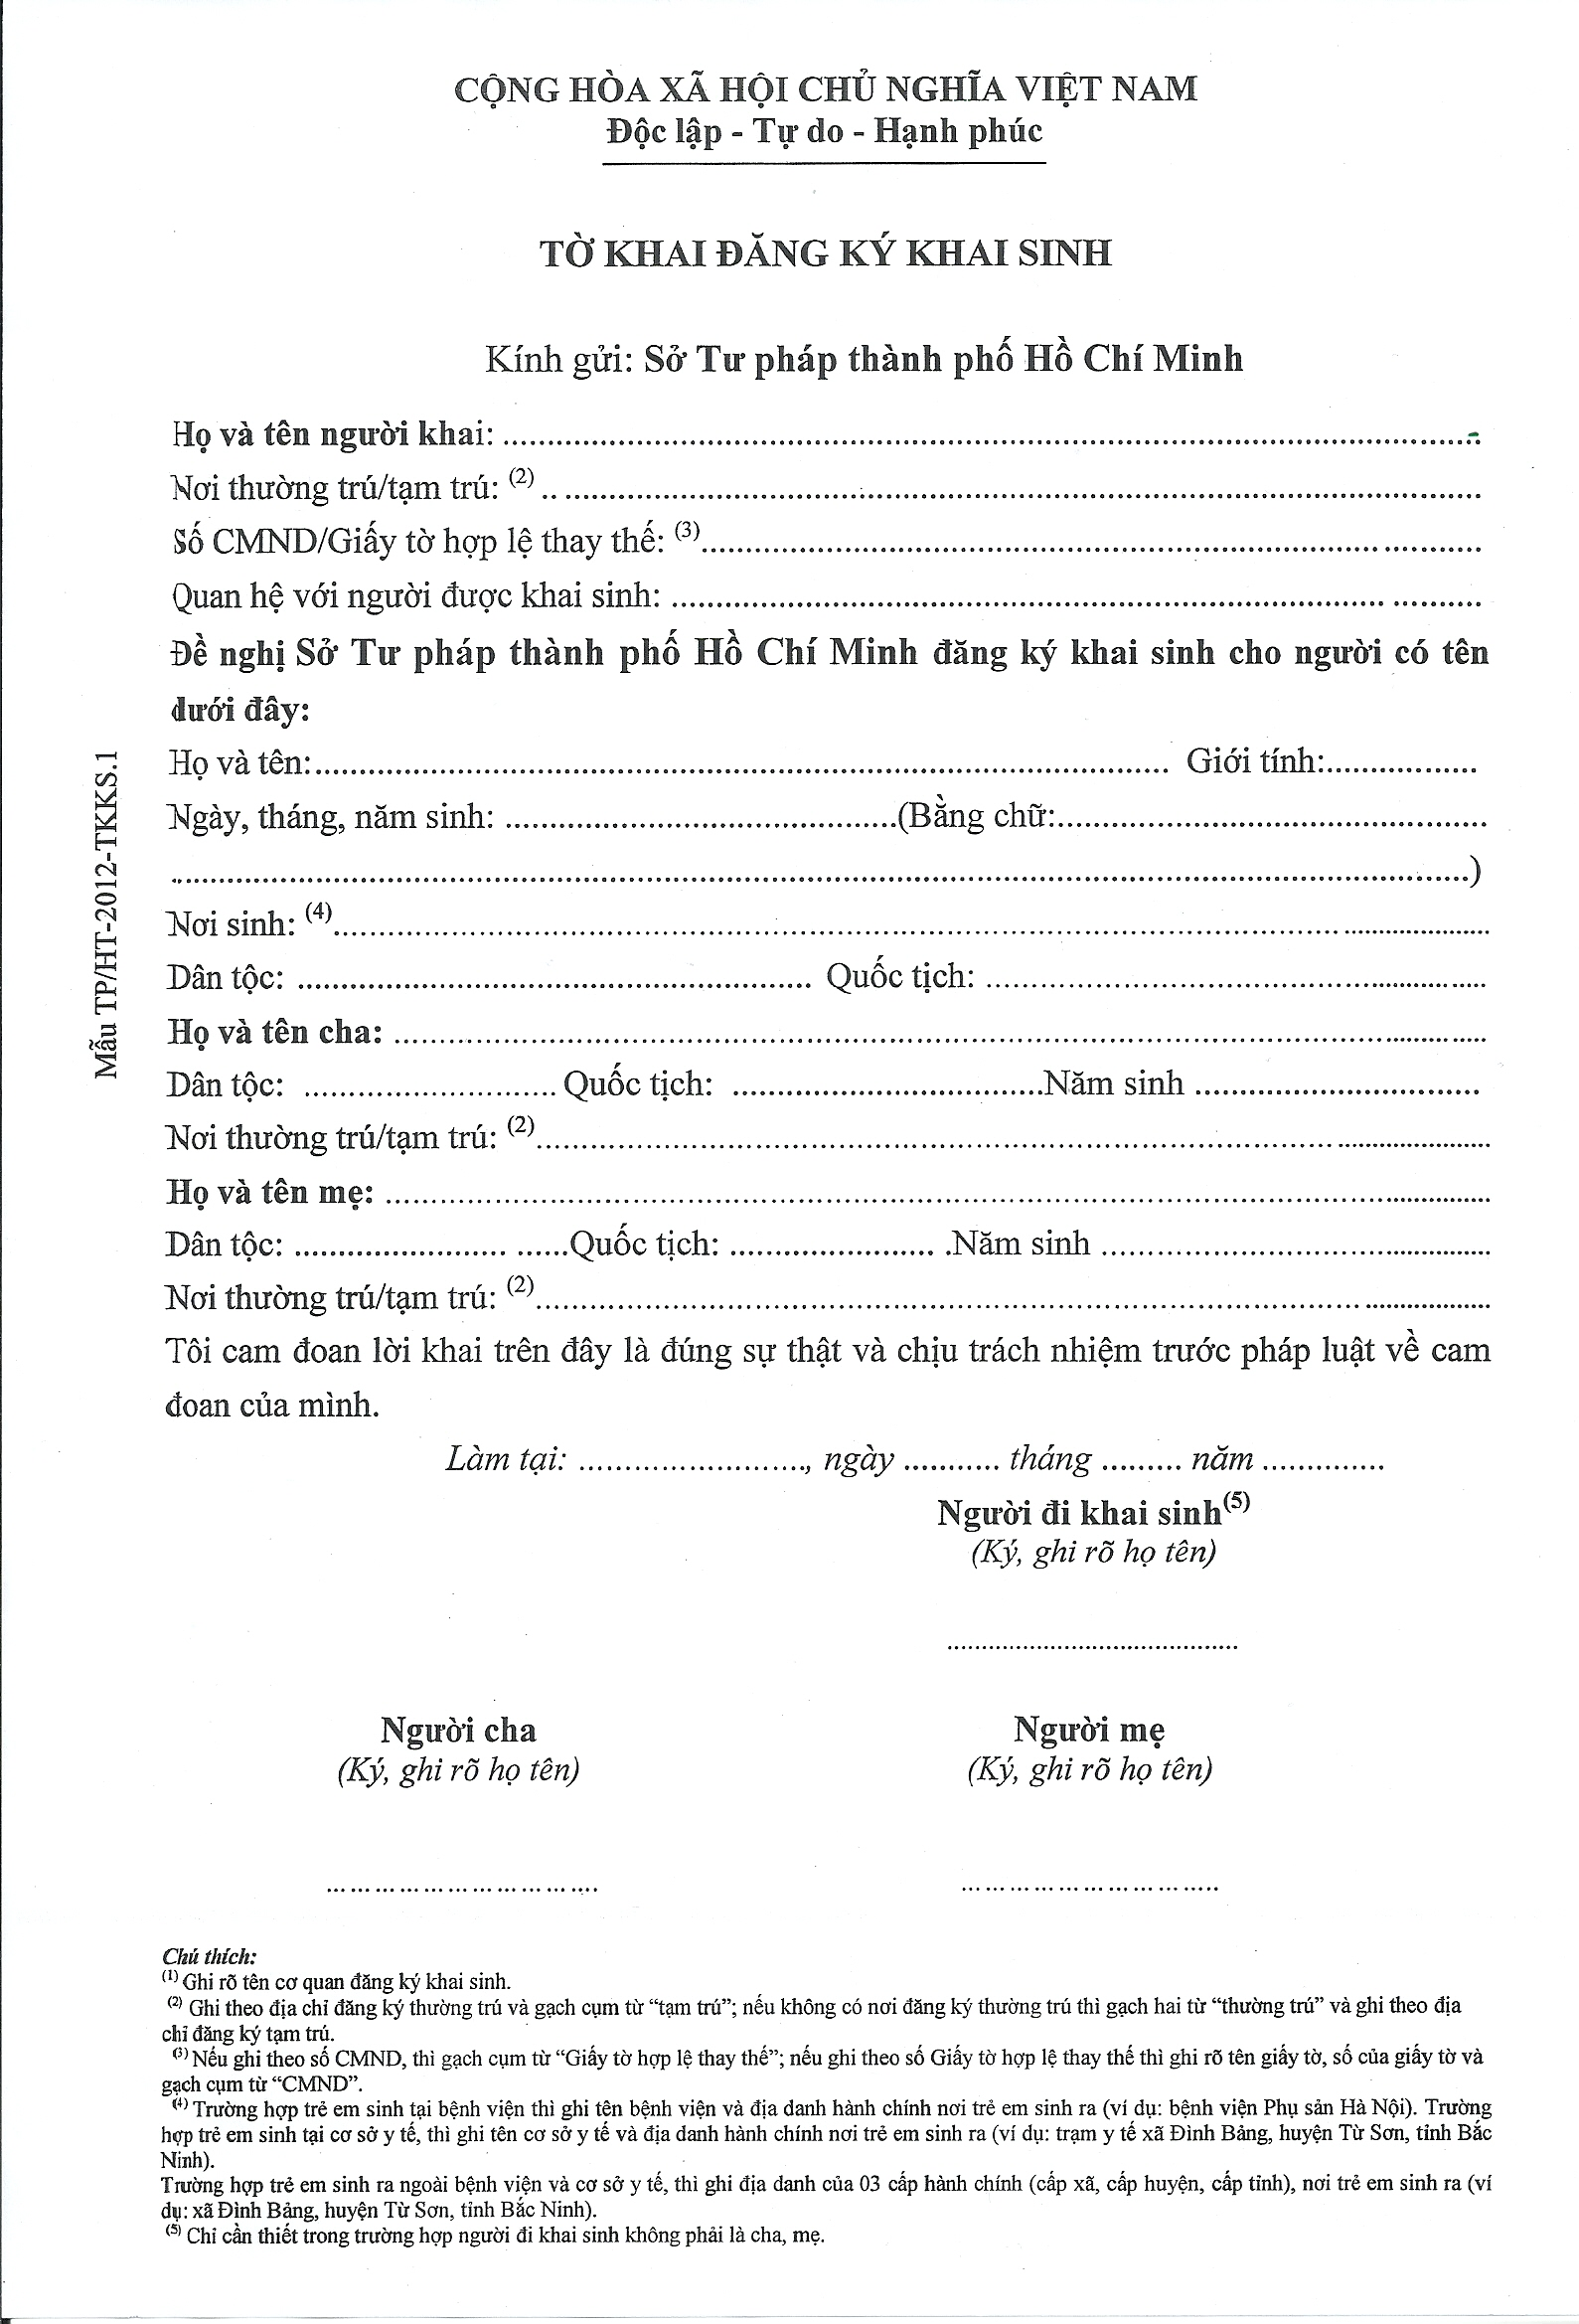 How to get a birth certificate in vietnam a summary hello saigon child birth registration form from the moj aiddatafo Choice Image